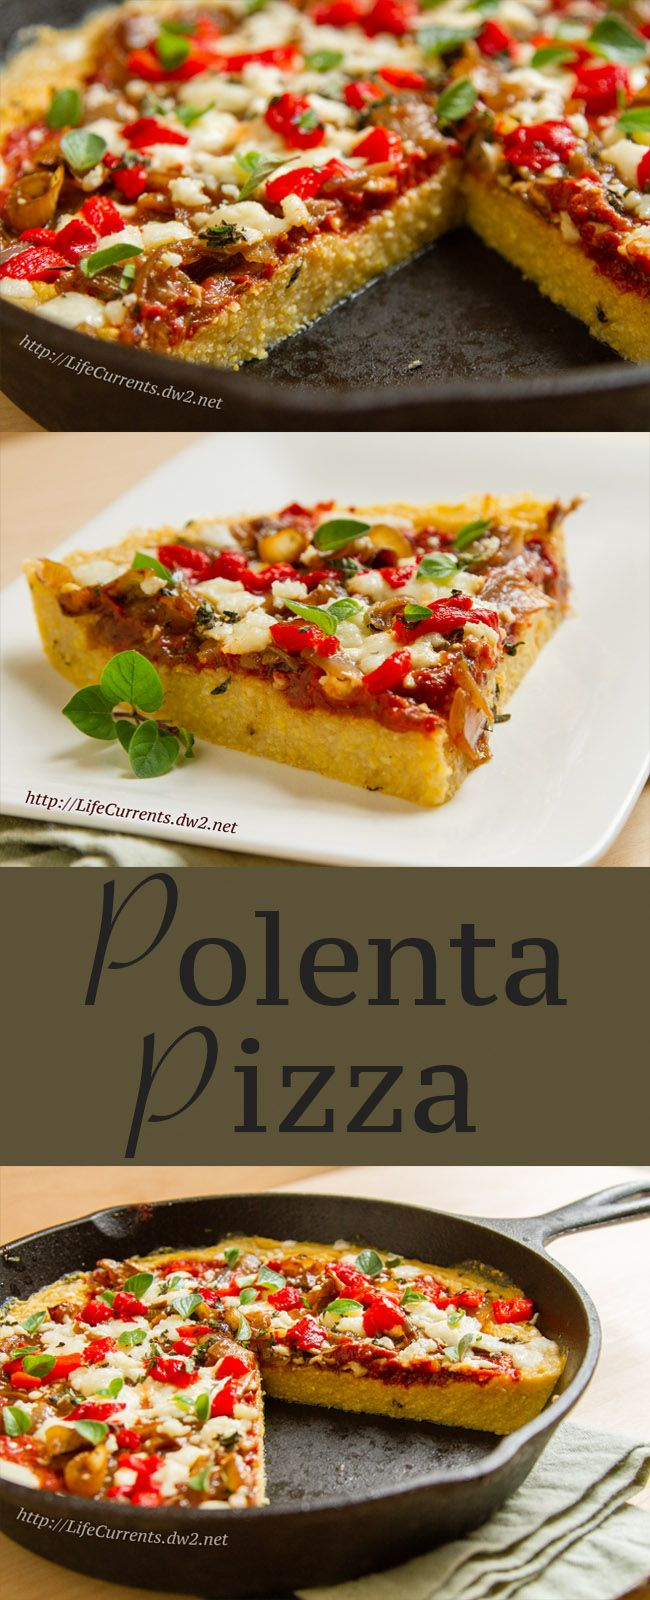 Polenta Pizza by Life Currents, a fun new twist on deep dish pizza for Brown Bag Lunch Month!